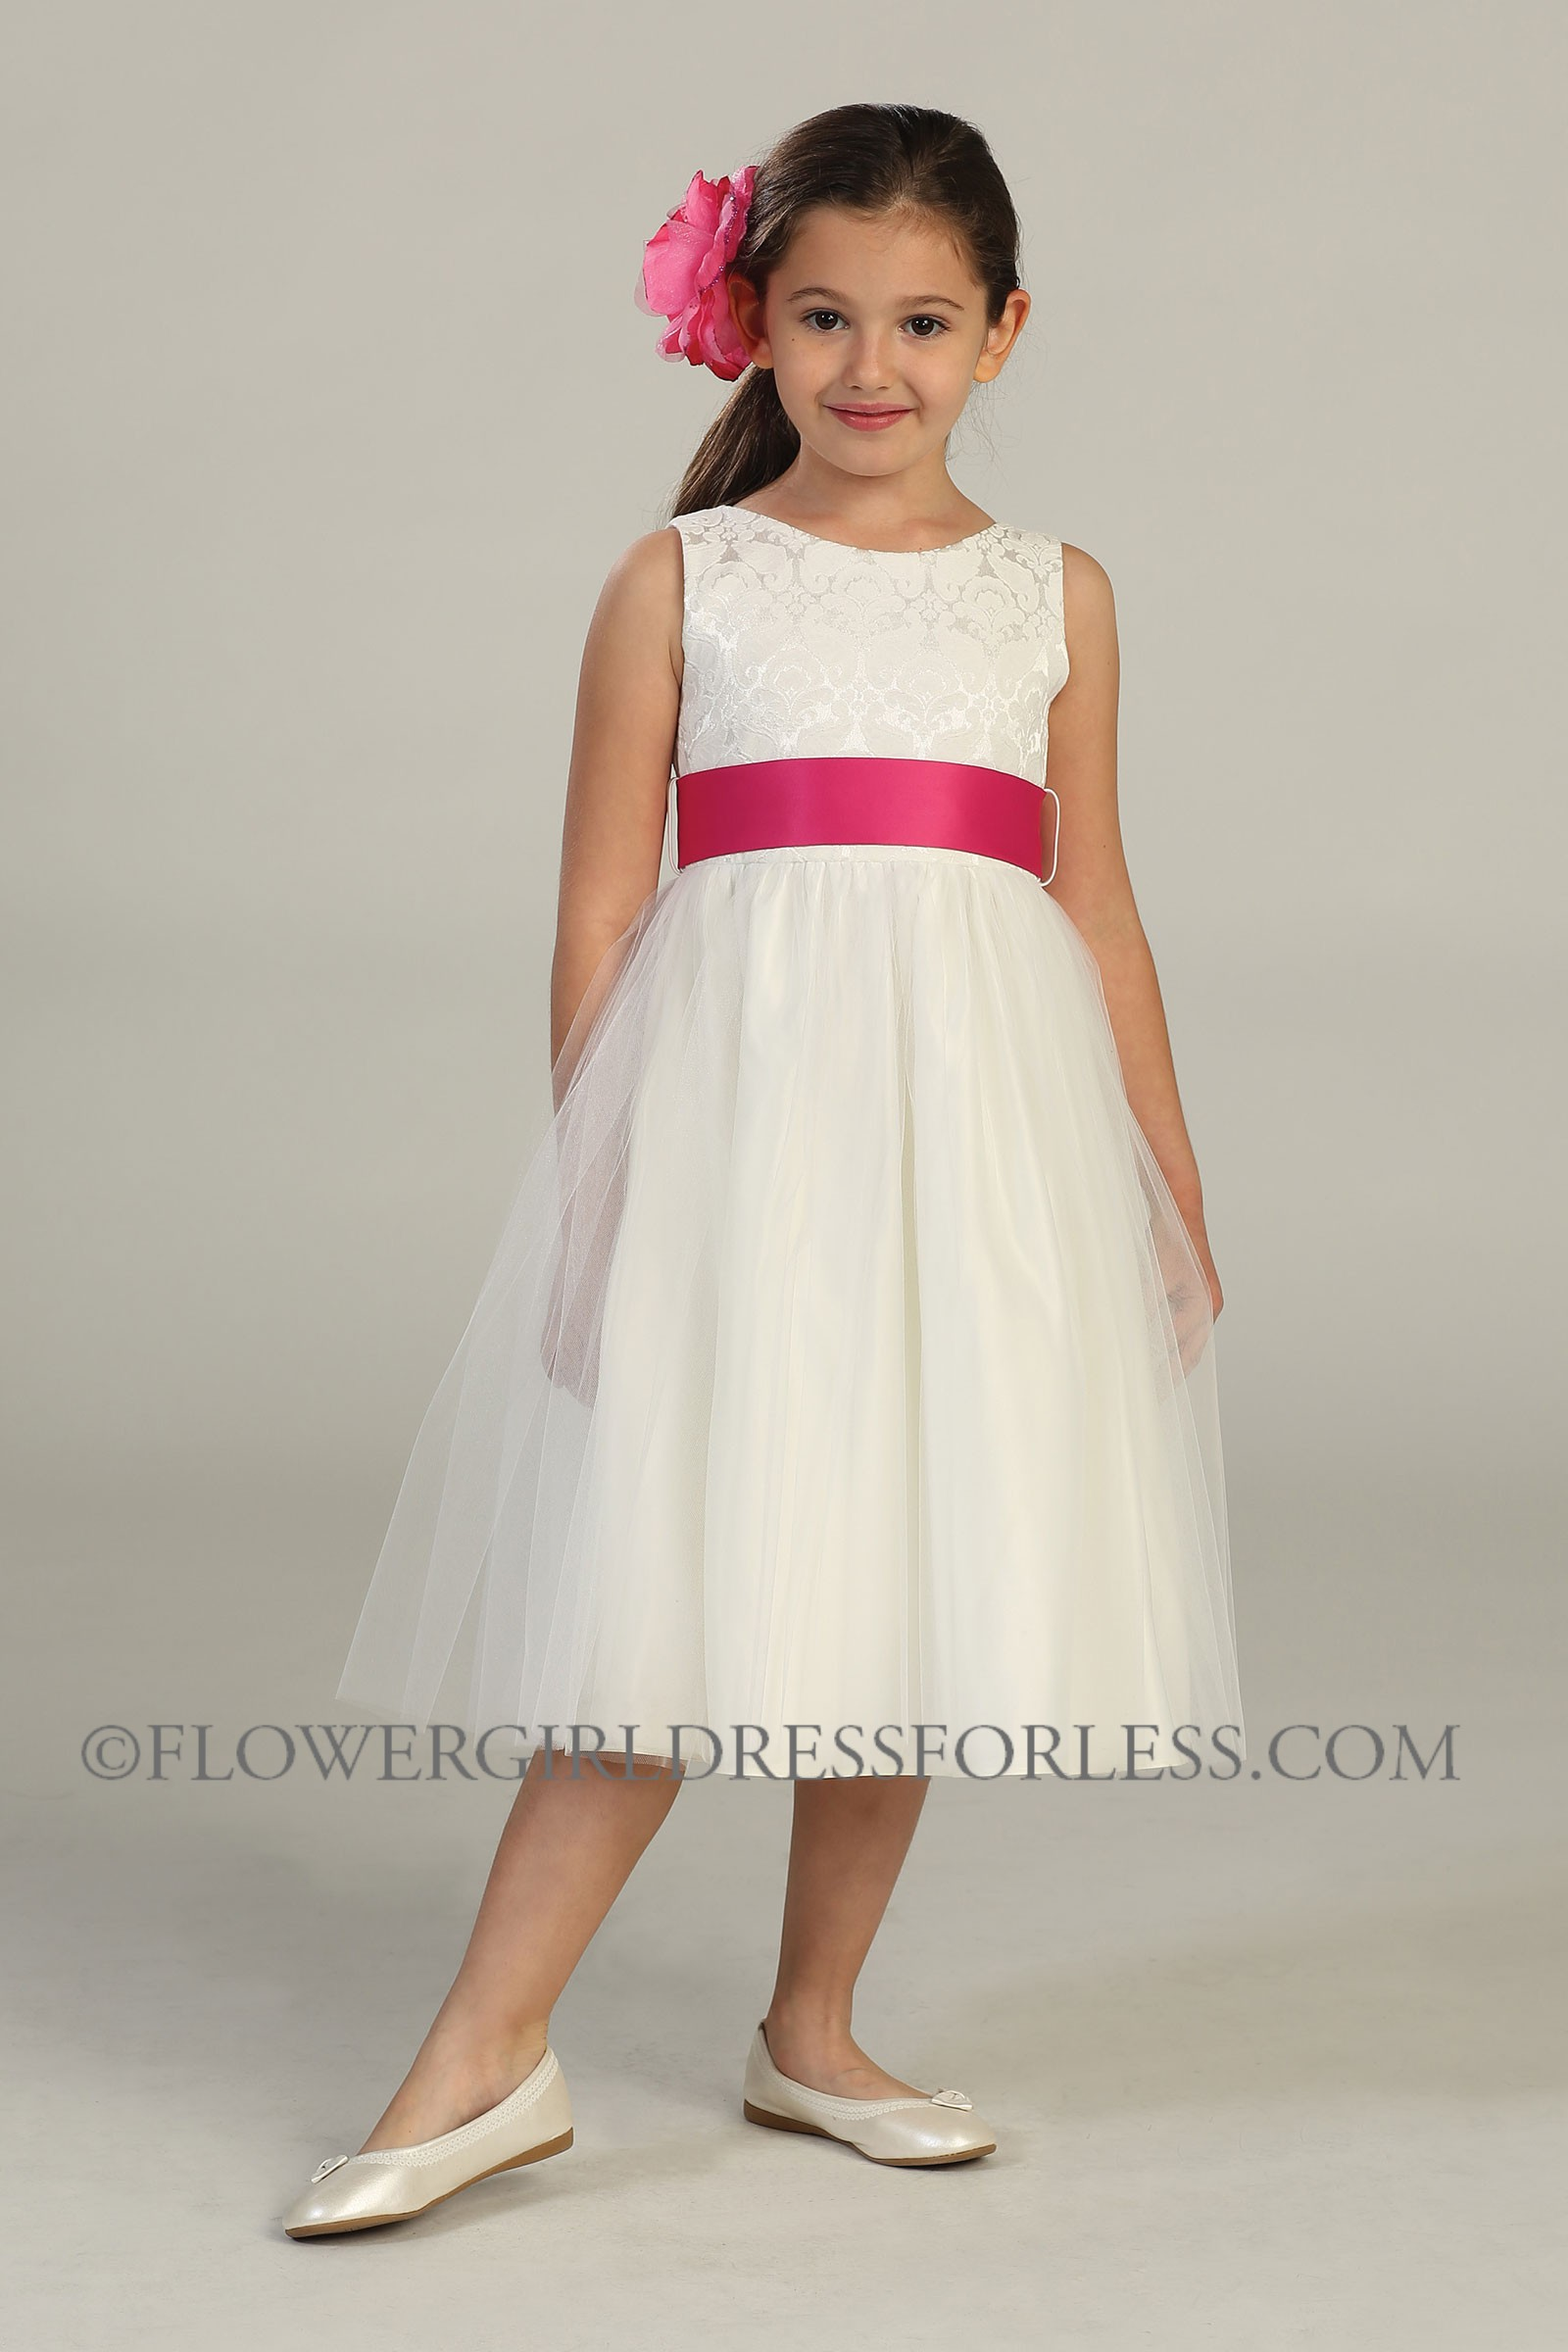 And surfing along the out there only this off white flower girl dress